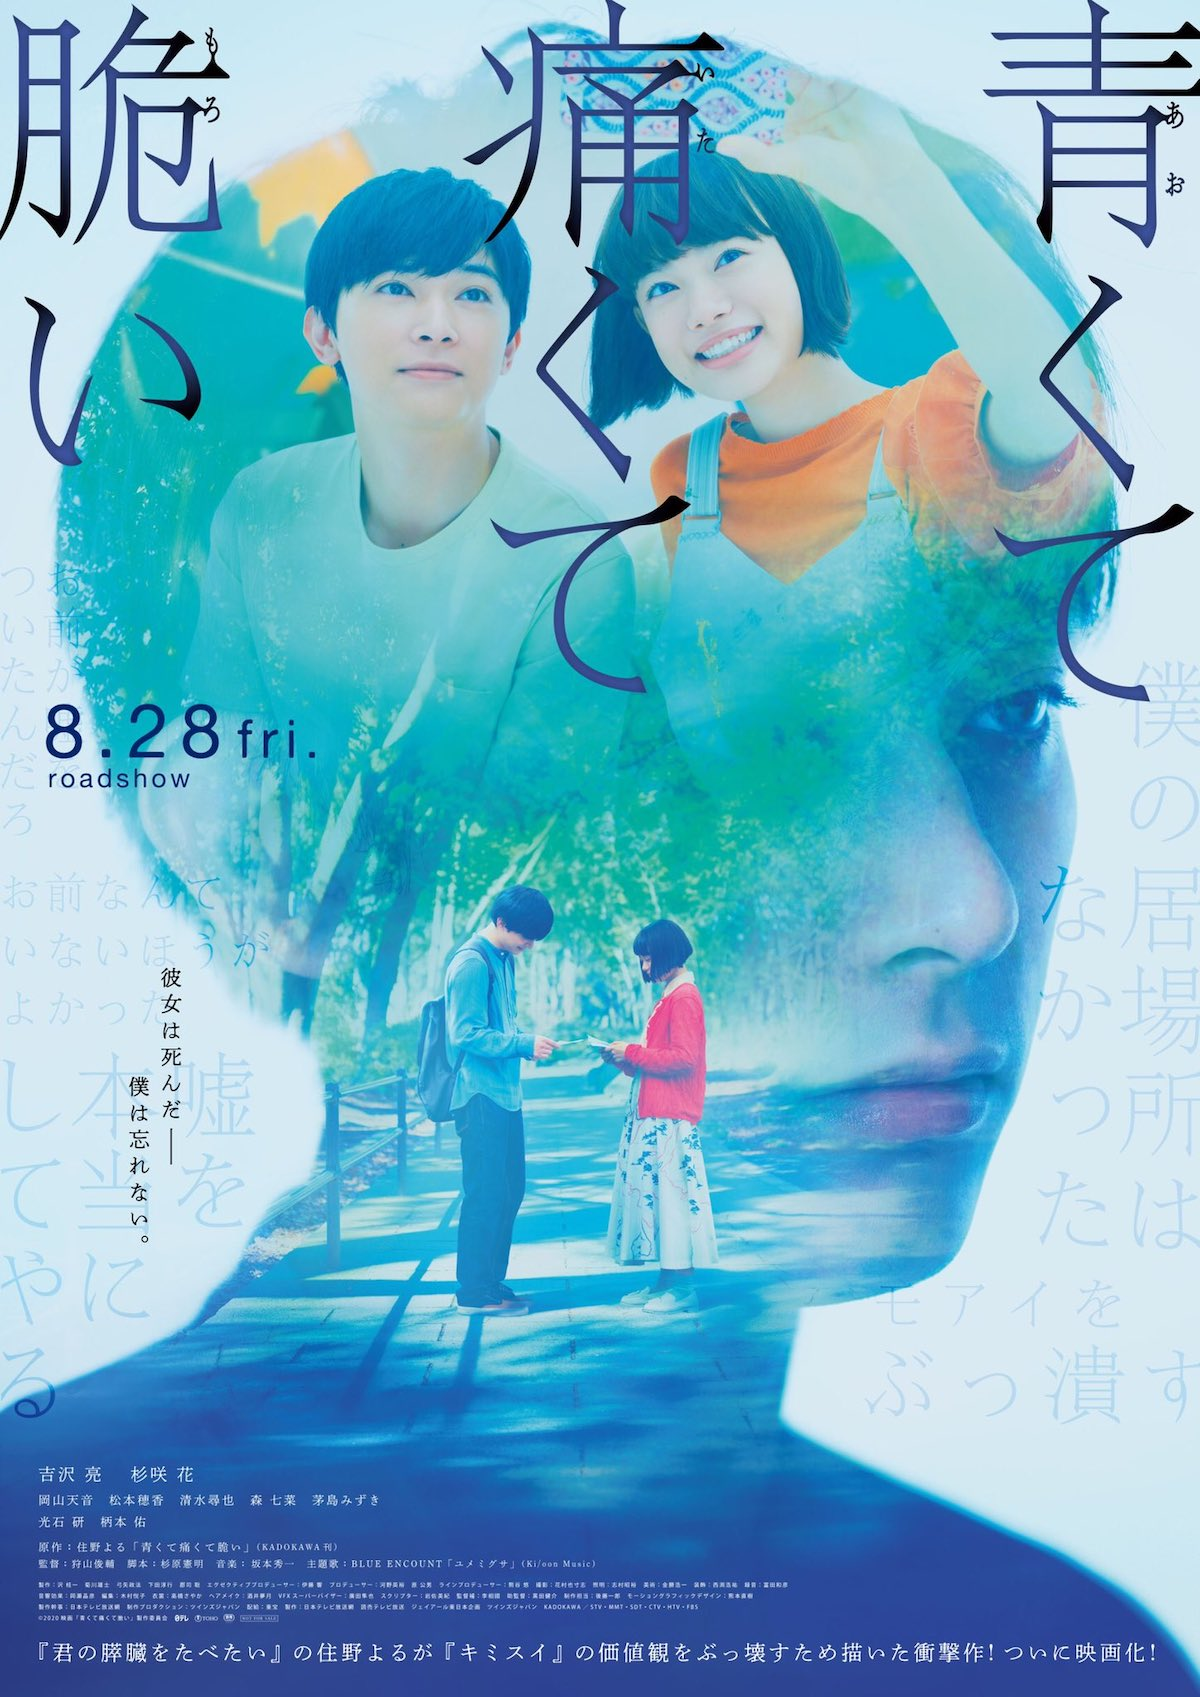 Blue, Painful, and Brittle (Jepang) : Sinopsis dan Review